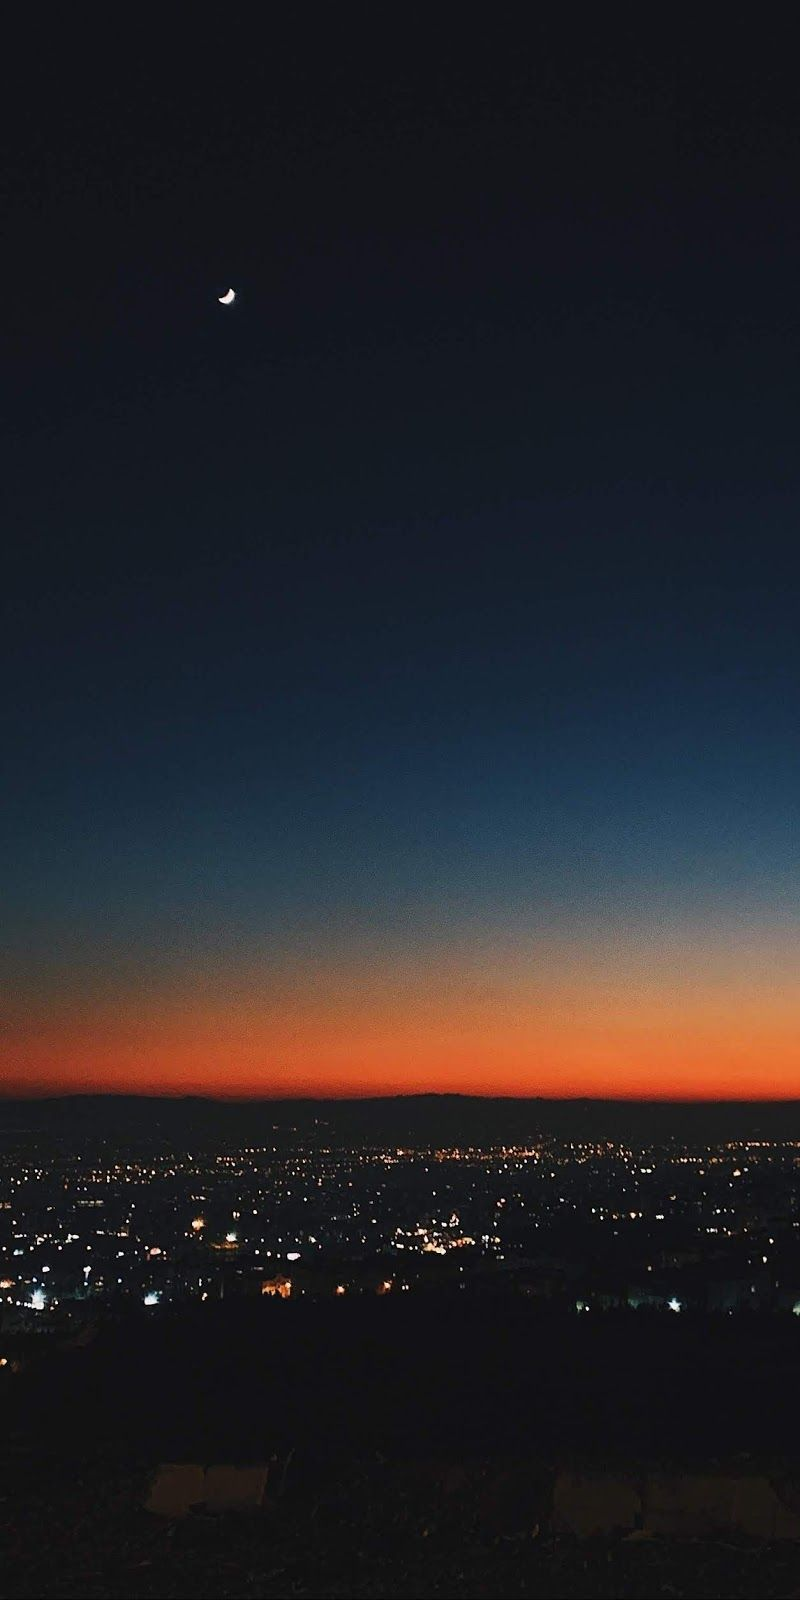 Sunset Before The Night Before Night Sunset The Night Landscape Photography Sky Aesthetic Sunset Wallpaper